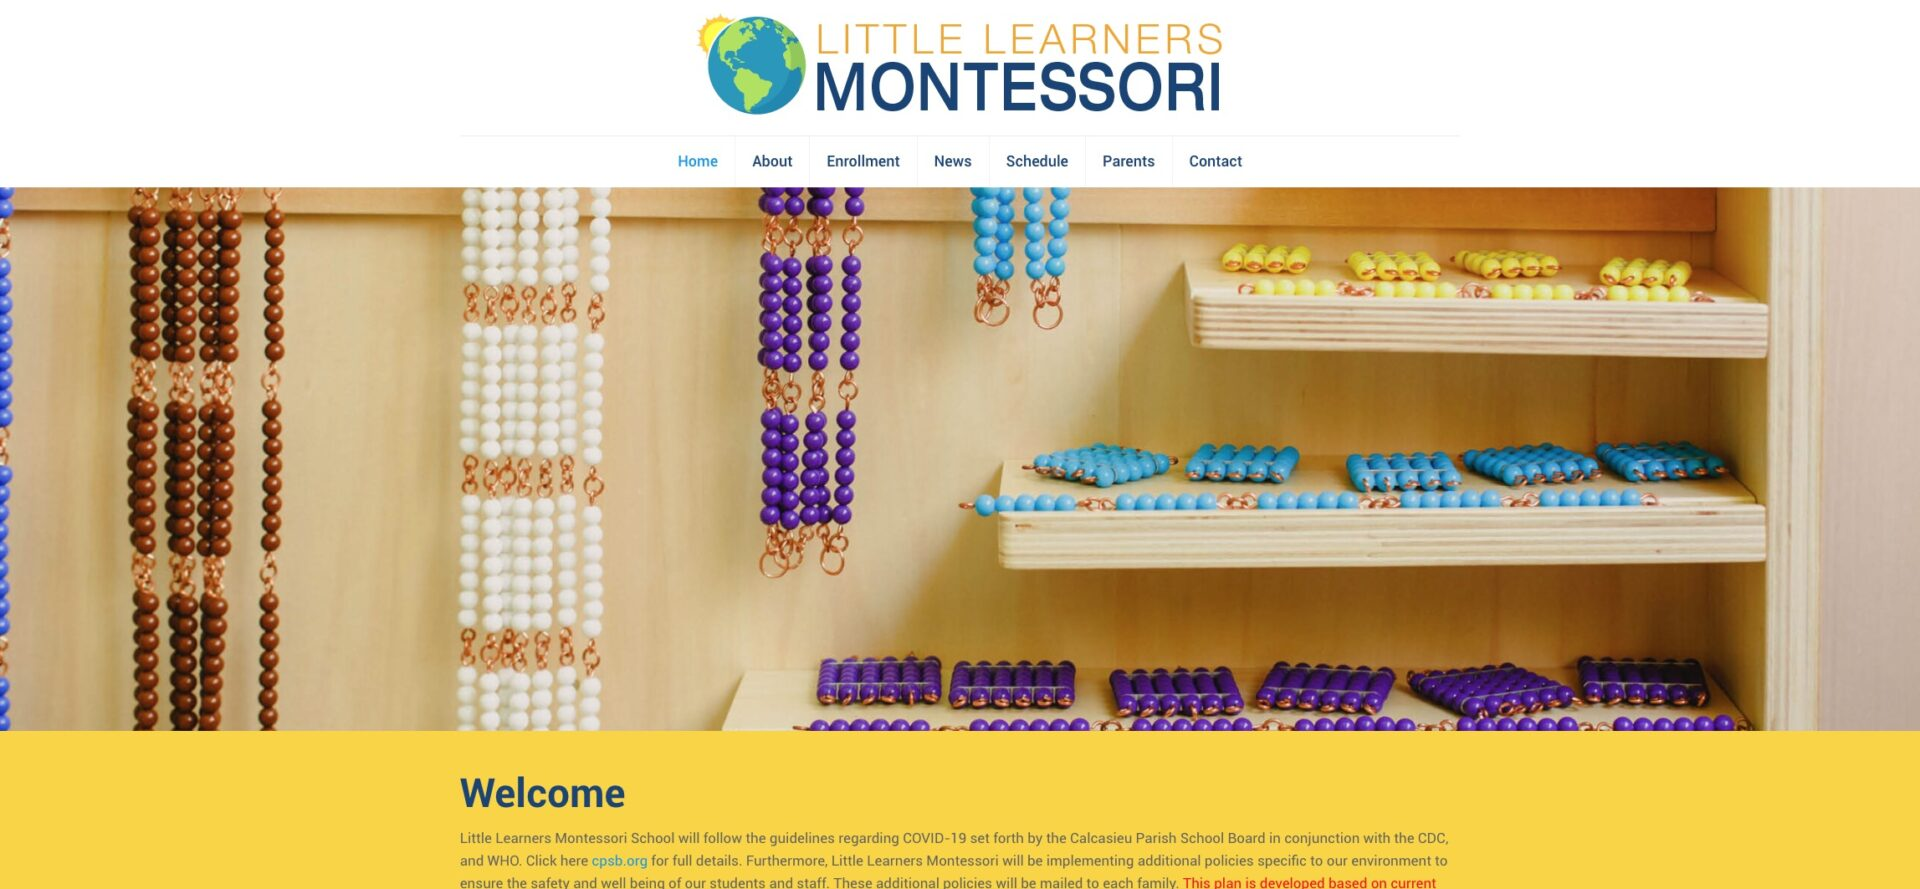 Little Learners Montessori School